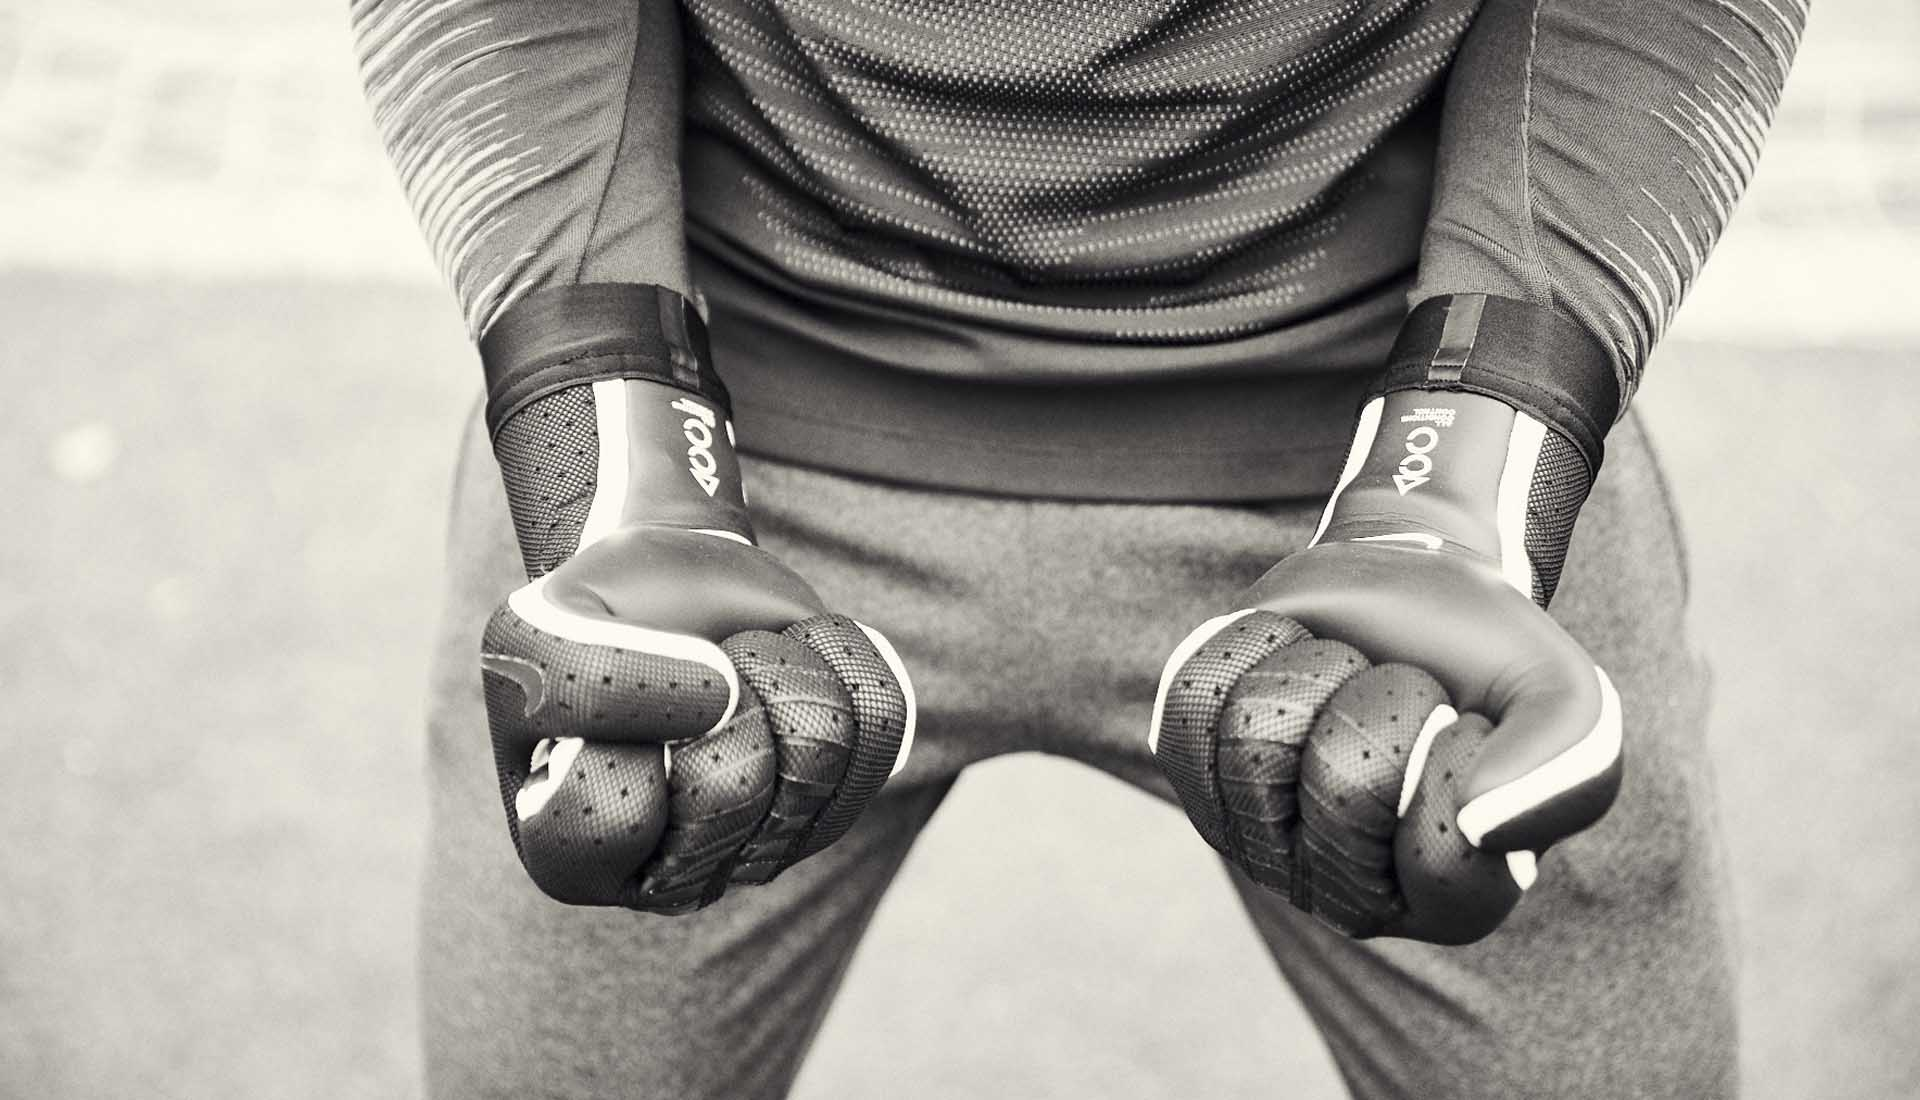 c322236fe60 Nike Reimagines Goalkeeper Gloves With The Mercurial Touch Elite ...